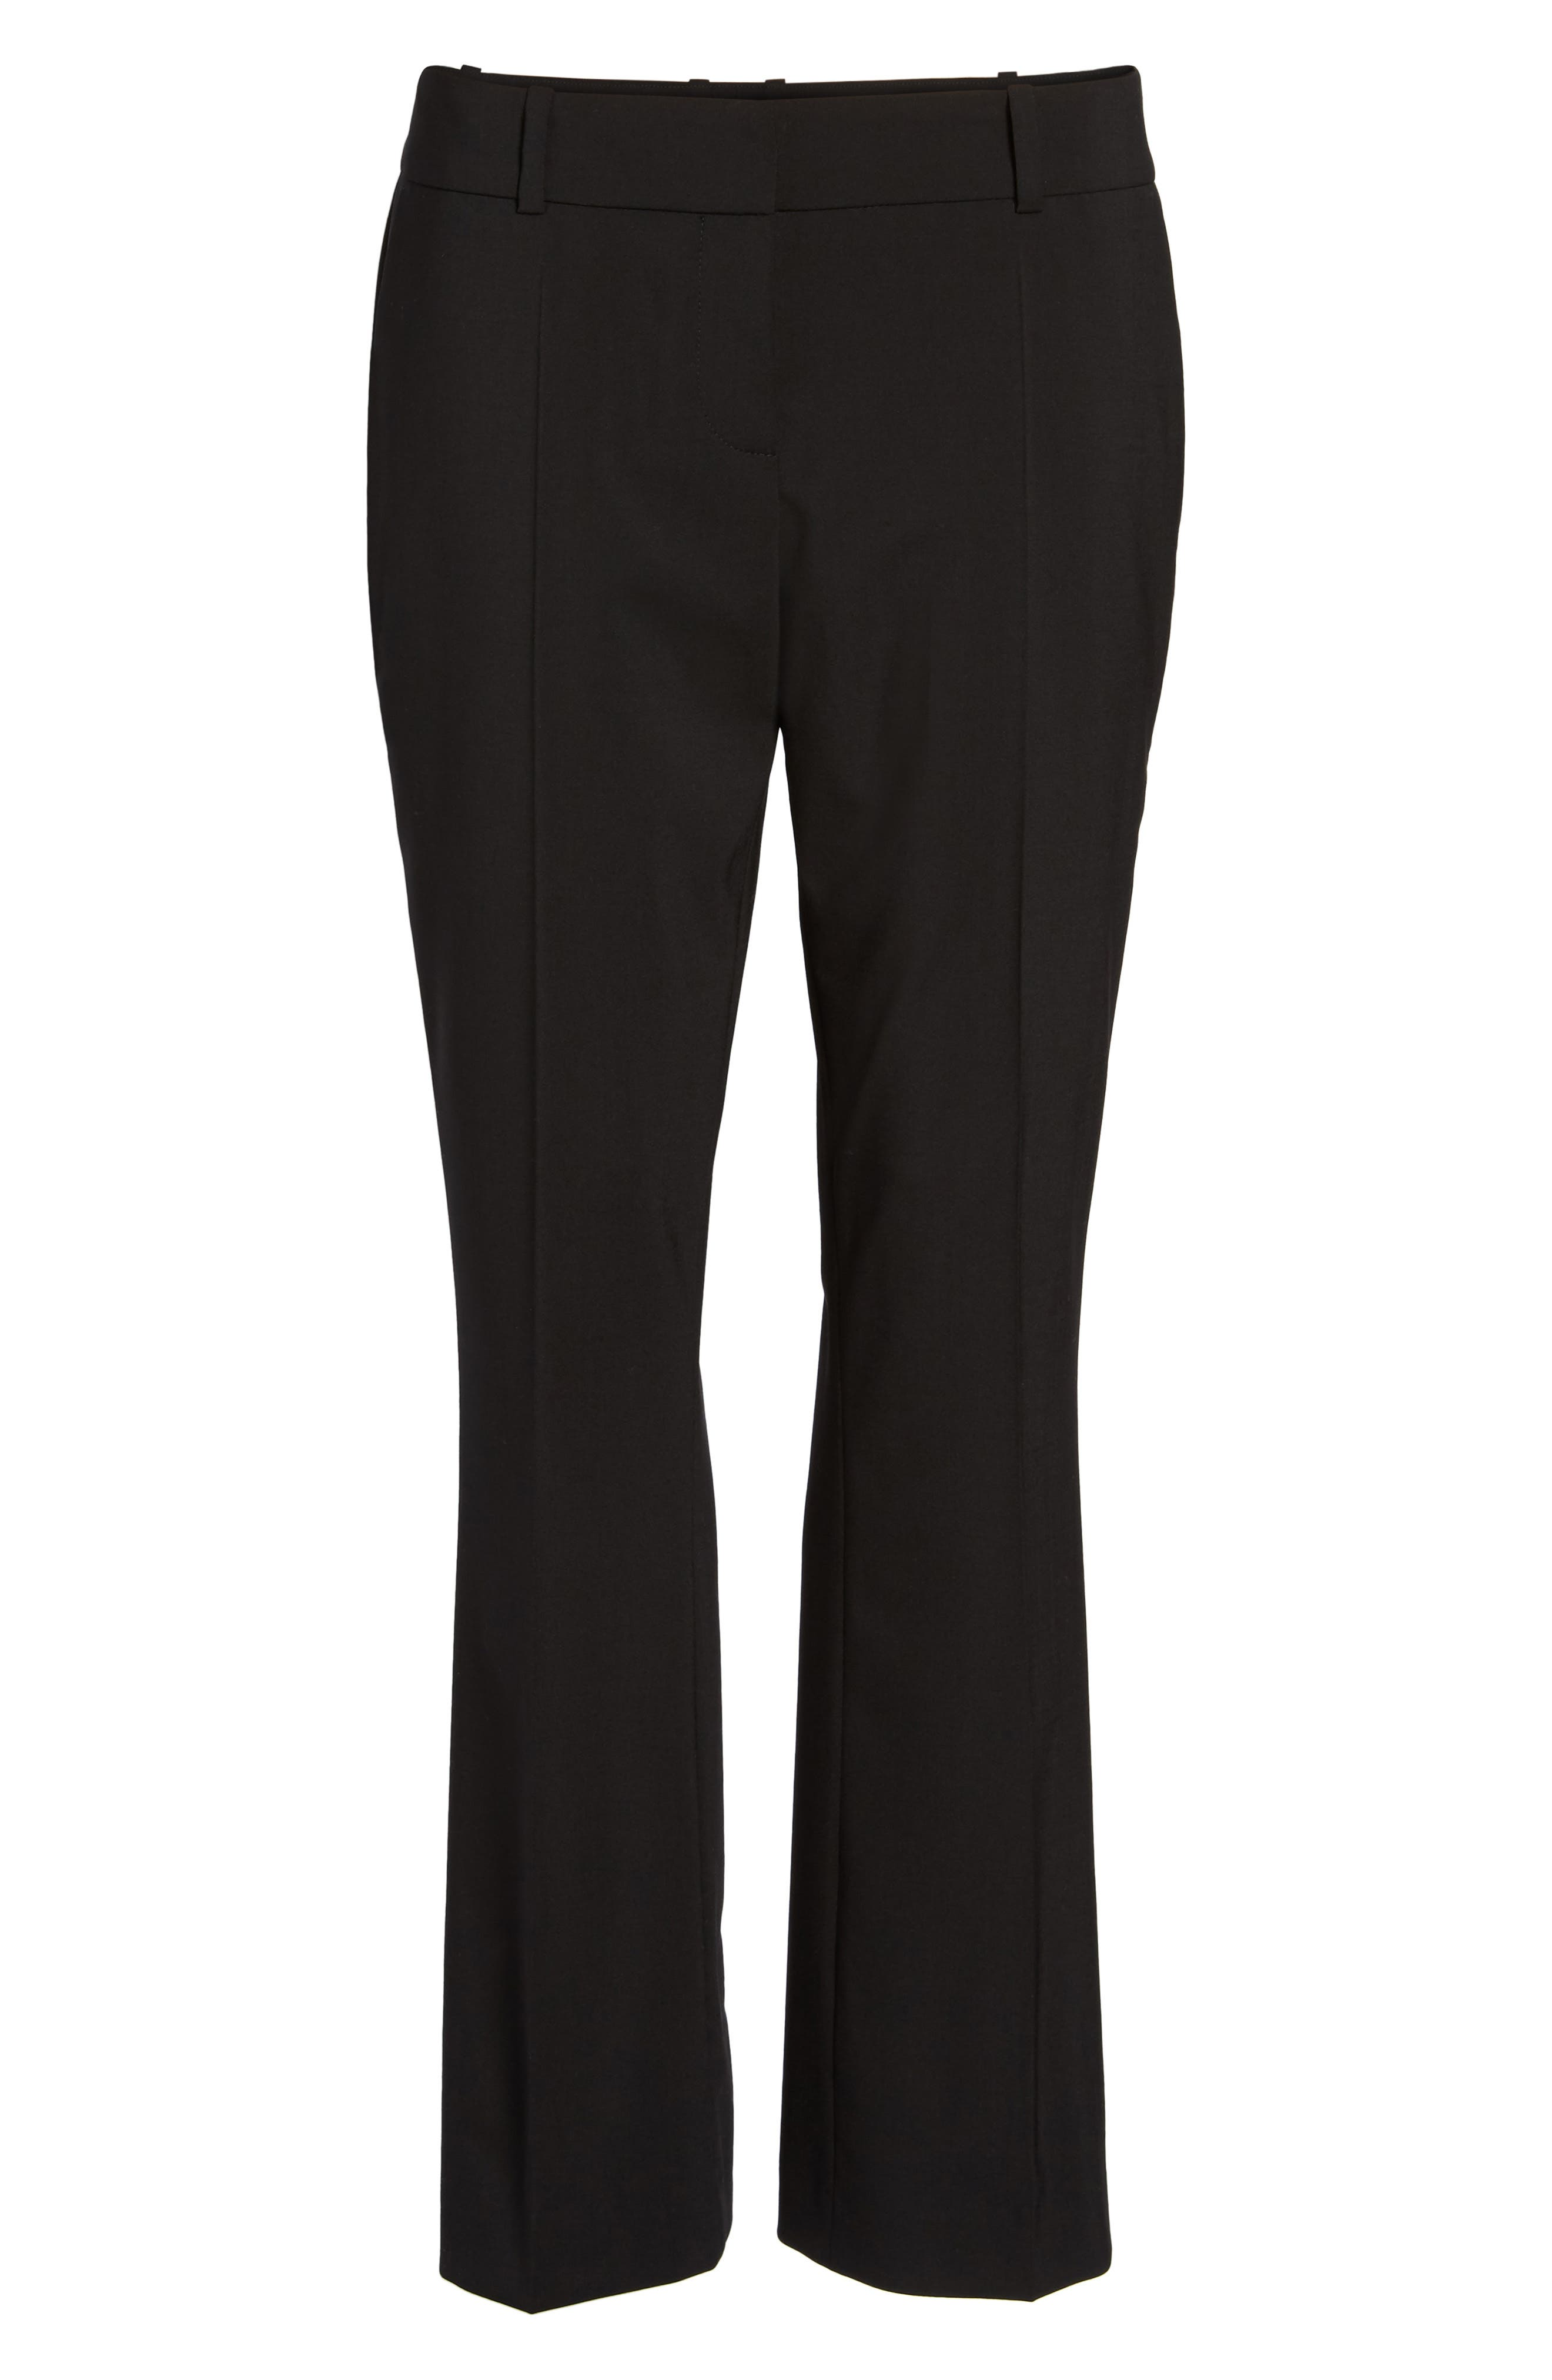 Talenara Tropical Stretch Wool Ankle Trousers,                             Alternate thumbnail 7, color,                             001